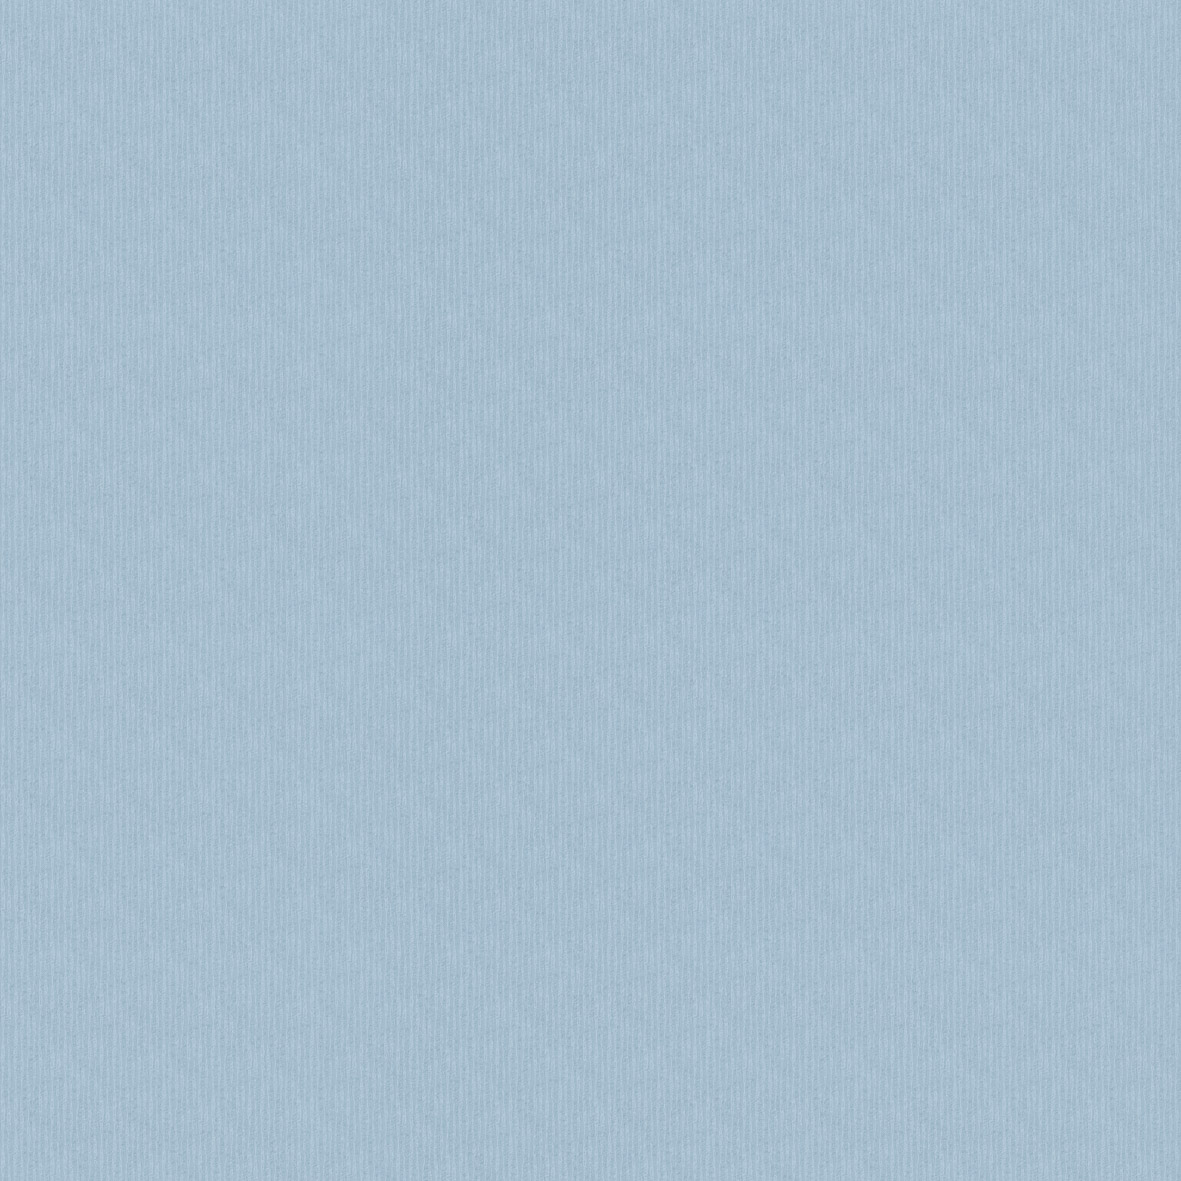 Roller_Swatch_Ribbons_asc_Blue_RE36468